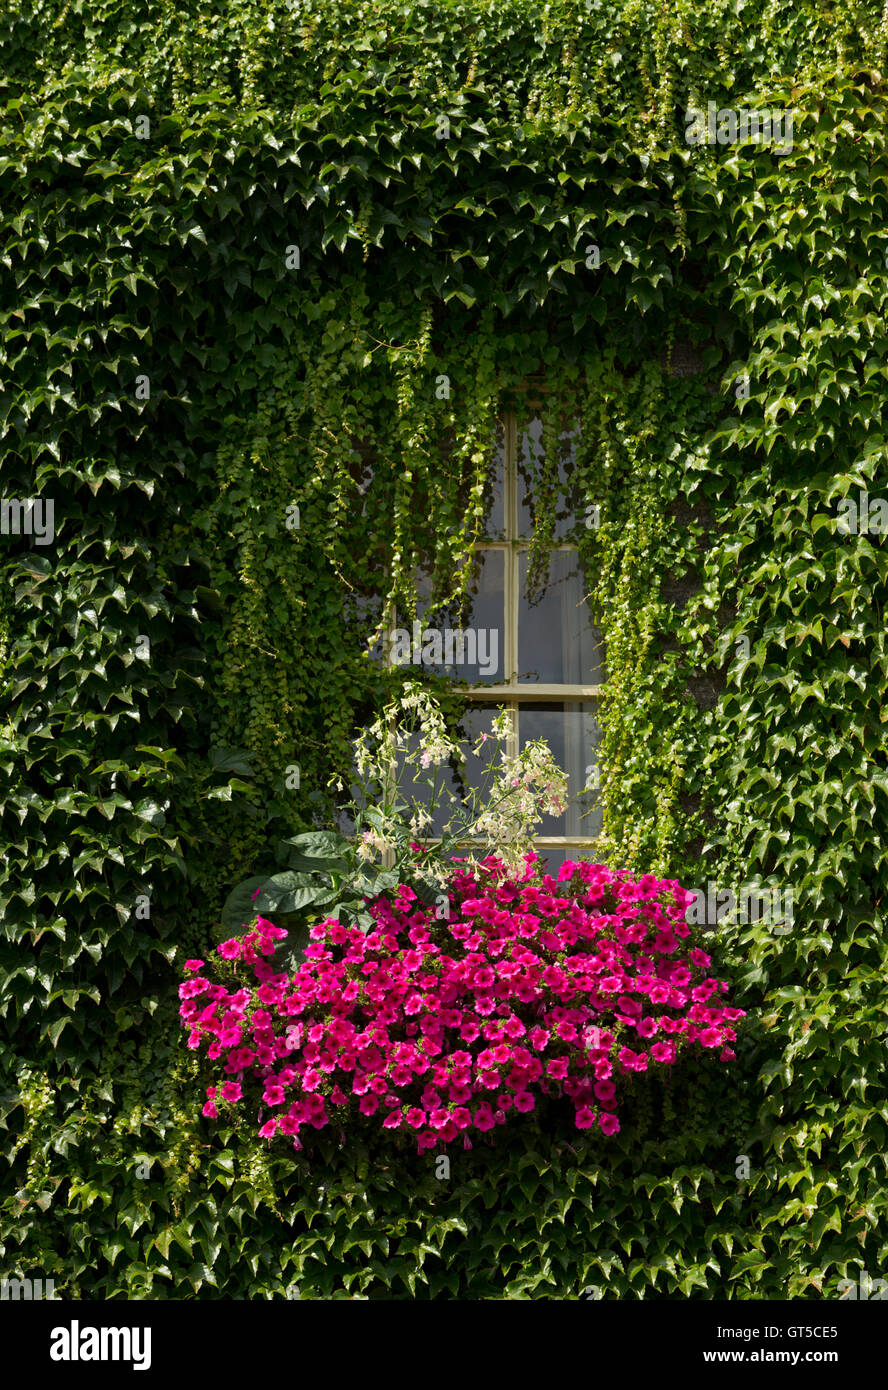 green ivy draped around an arch over window box of pink flowers. Unsharpened - Stock Image